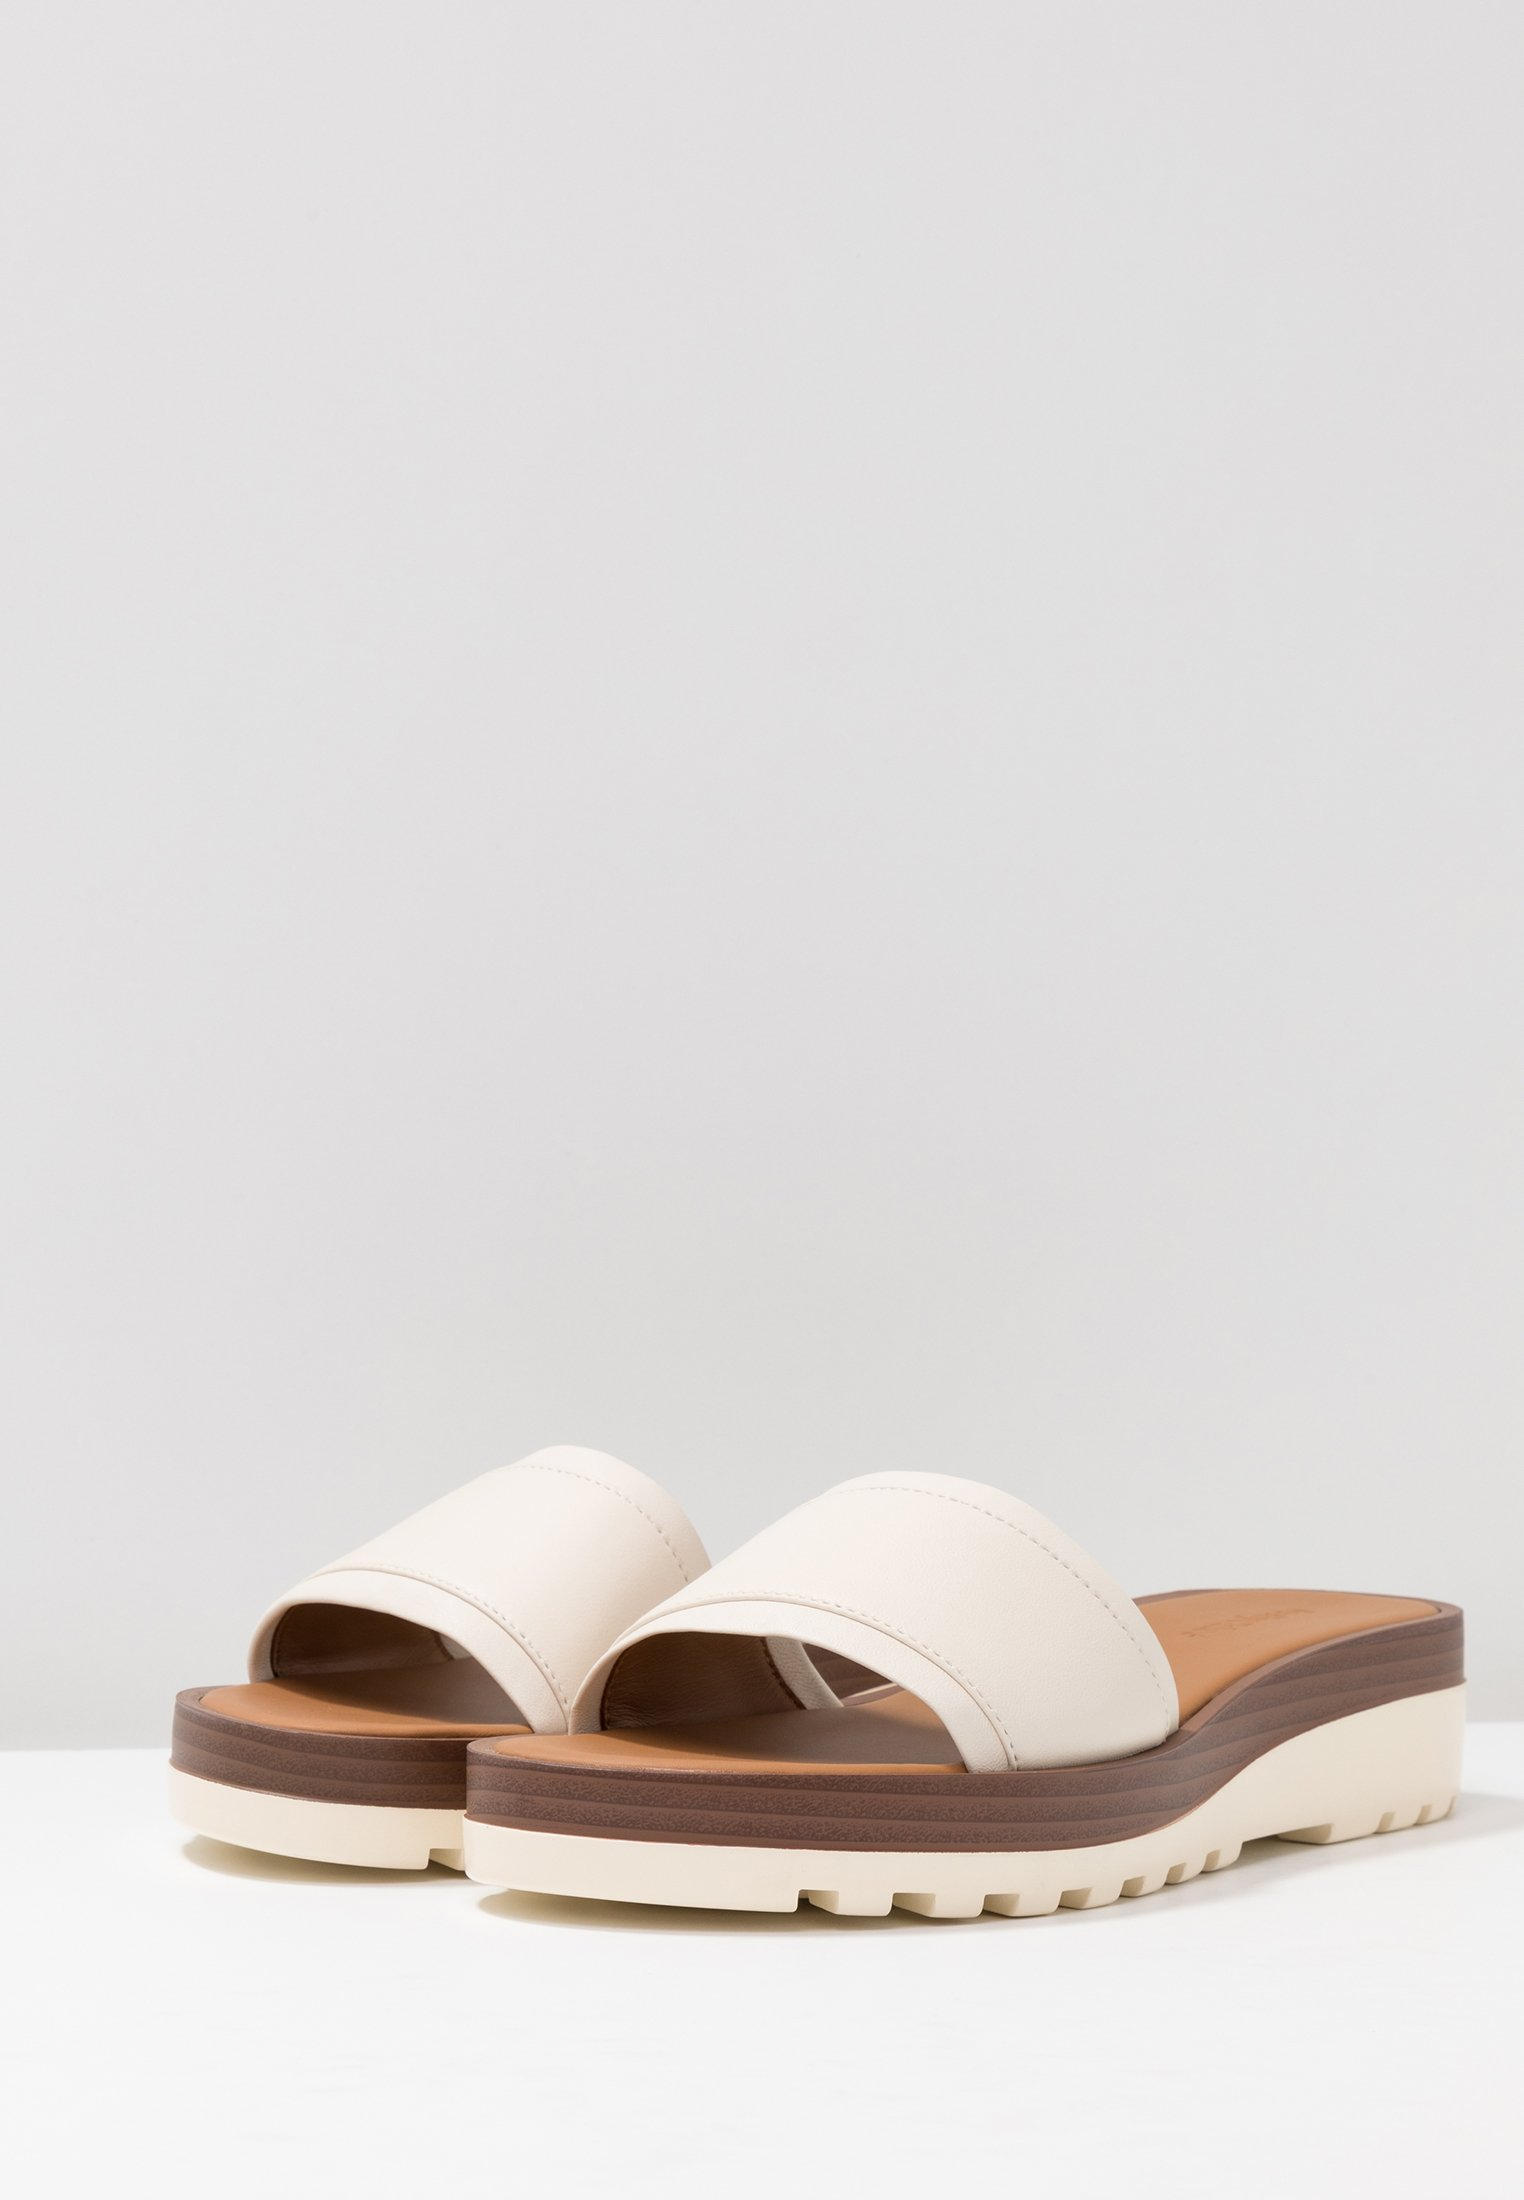 Mules by Mules gesso See Chloé Chloé by See gesso TFuK3Jl1c5